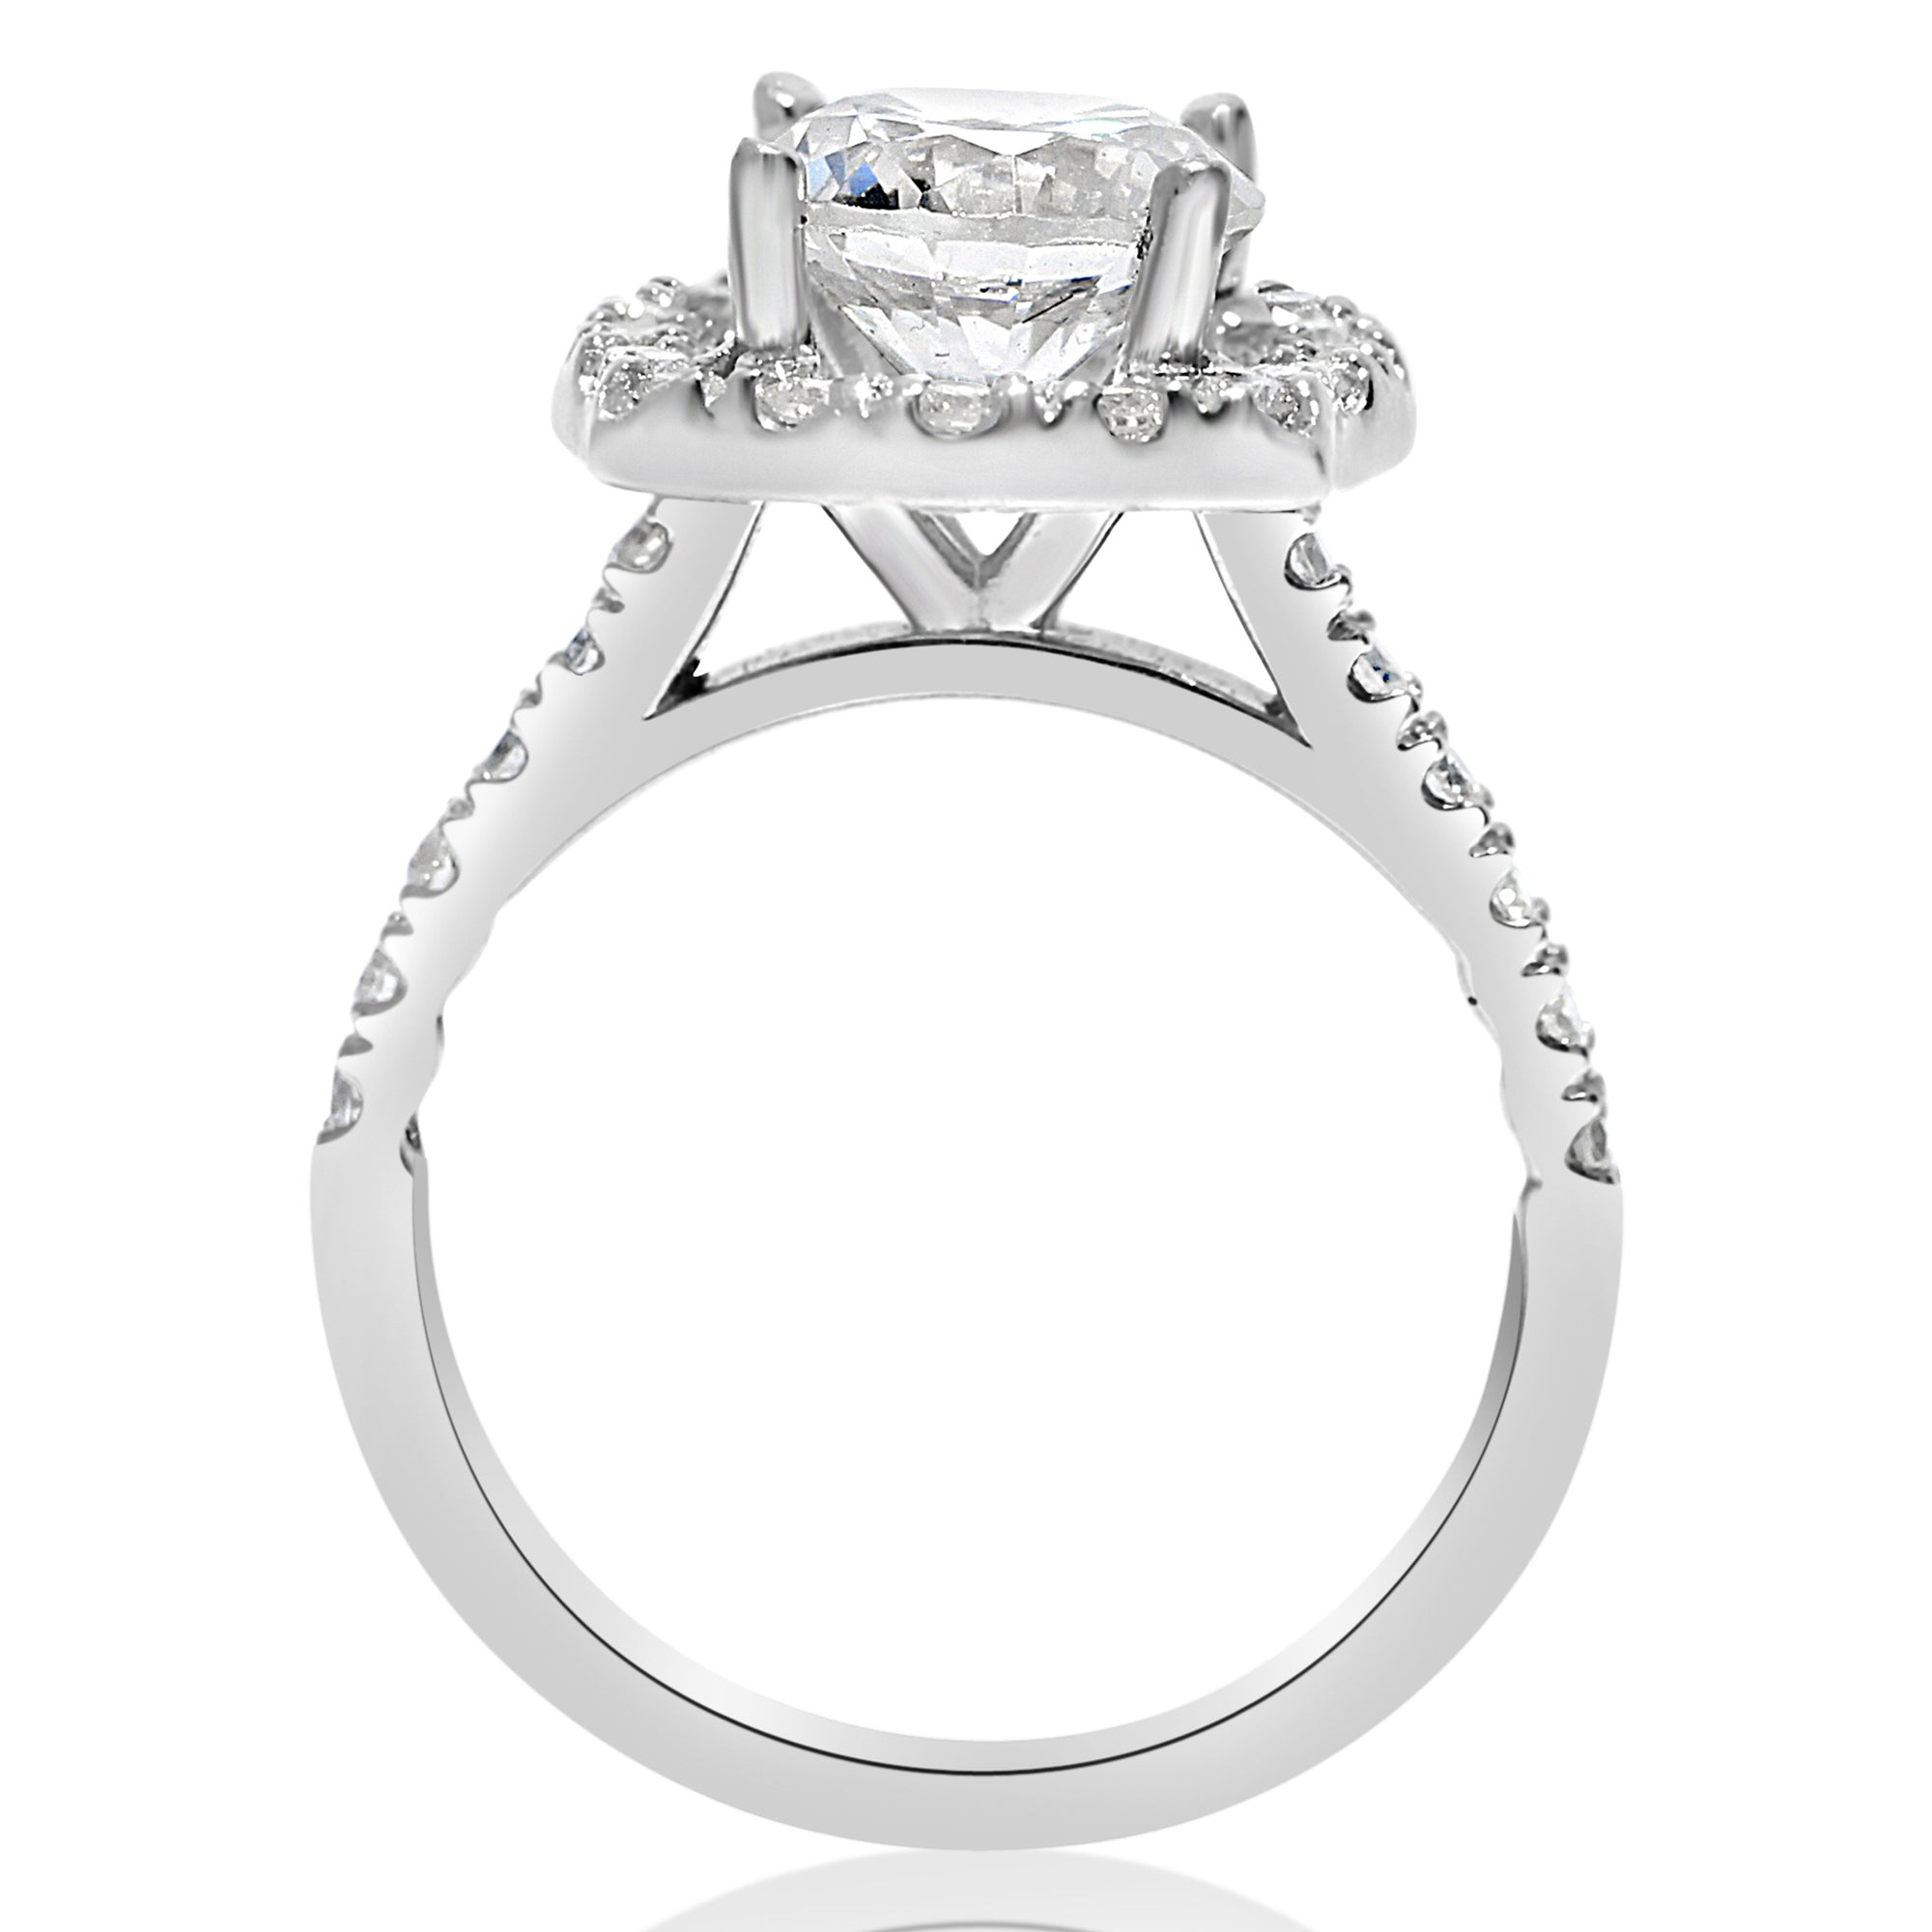 engagement prong gold halo ct set criss cross products wedding platinum white diamond ring rings collections